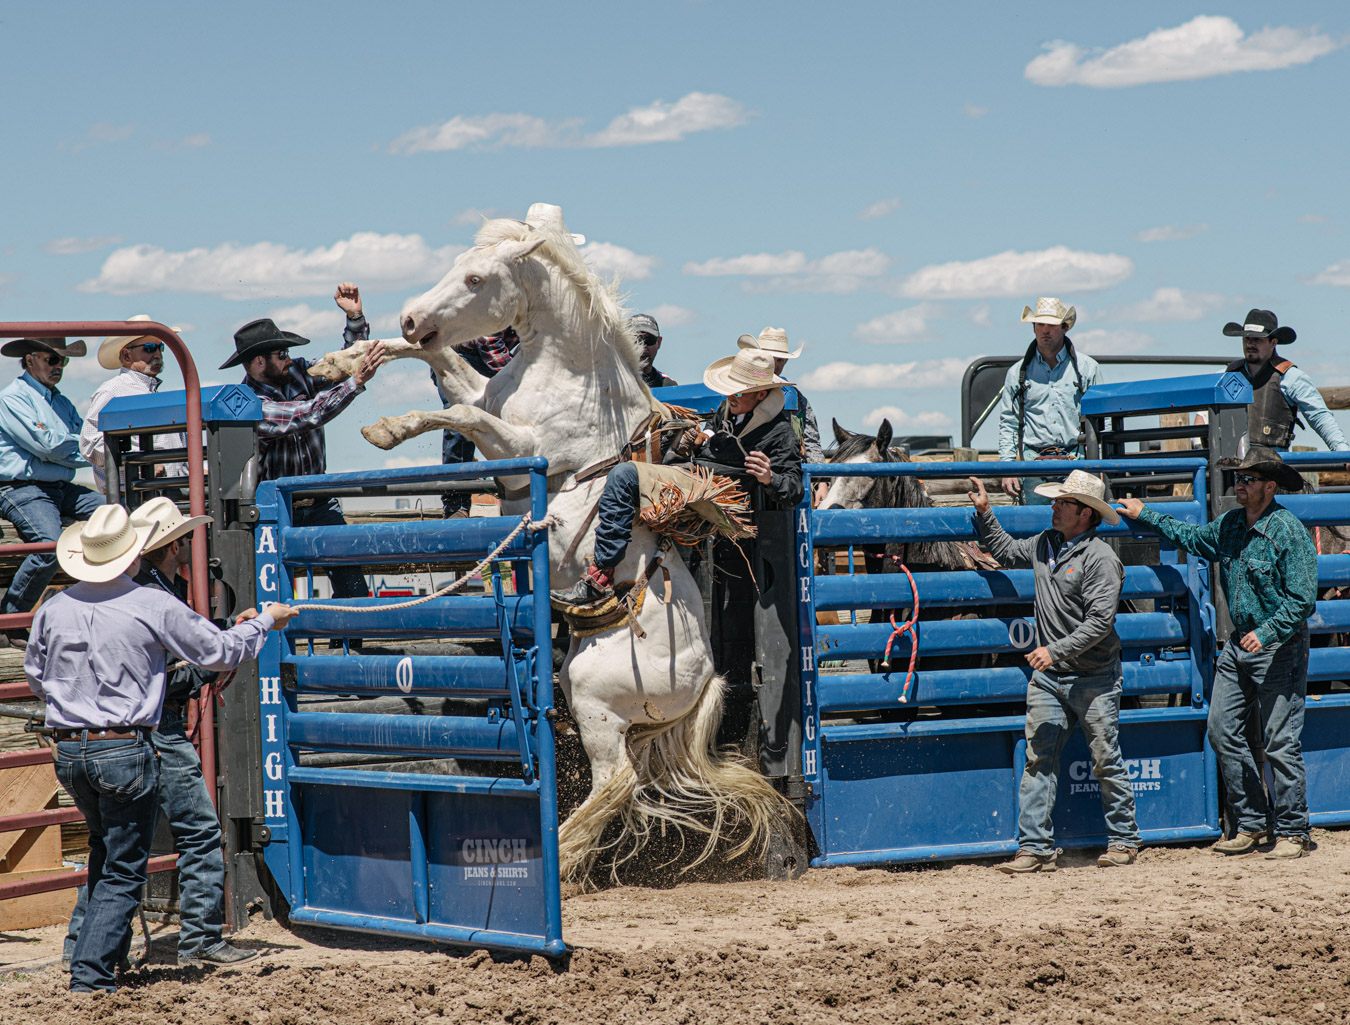 Rodeo training at cervi ace high ranch academy